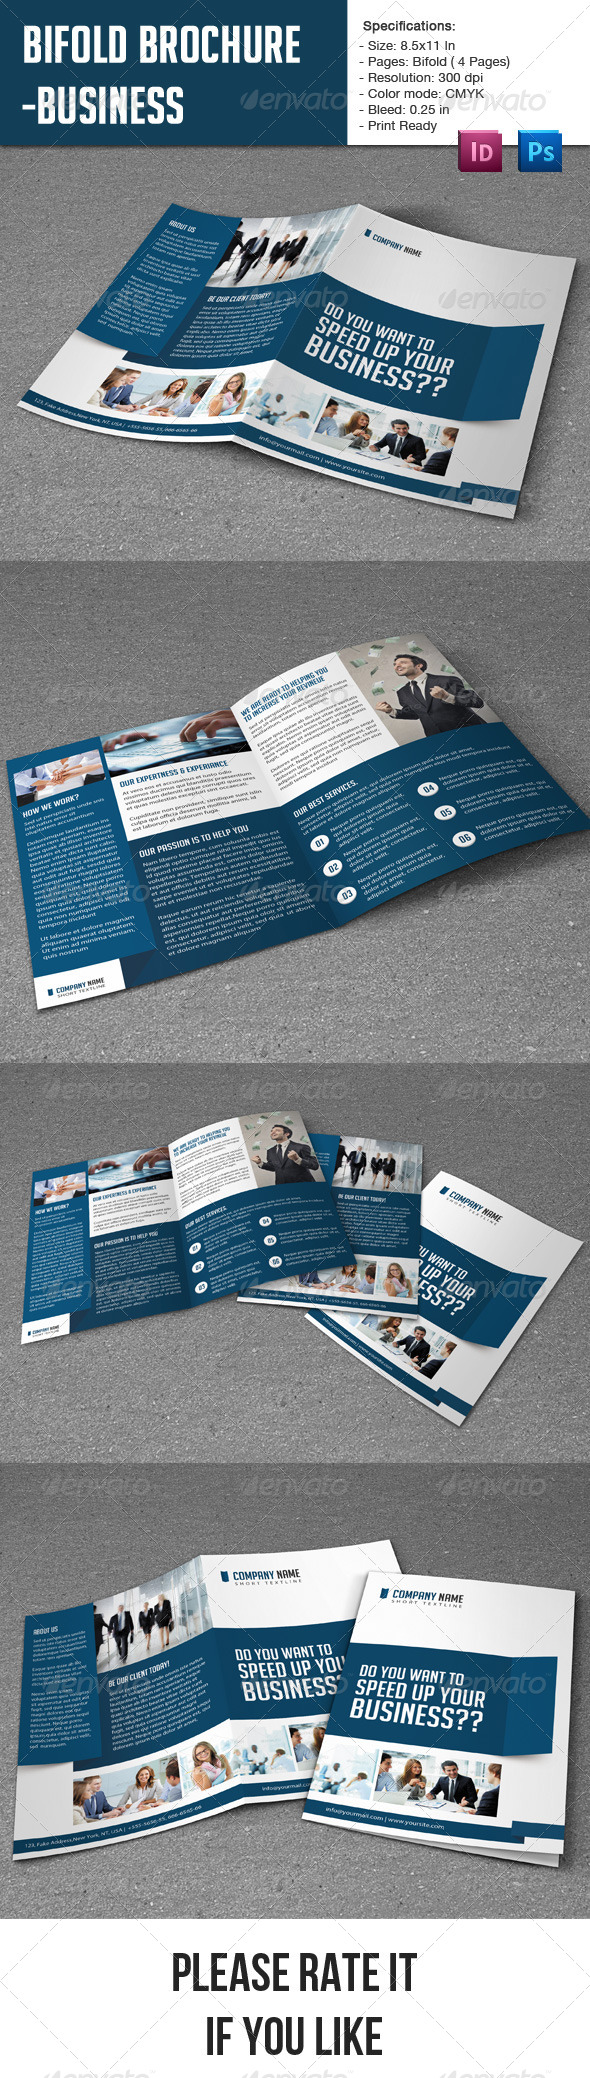 GraphicRiver Bifold Brochure- Business 7098308